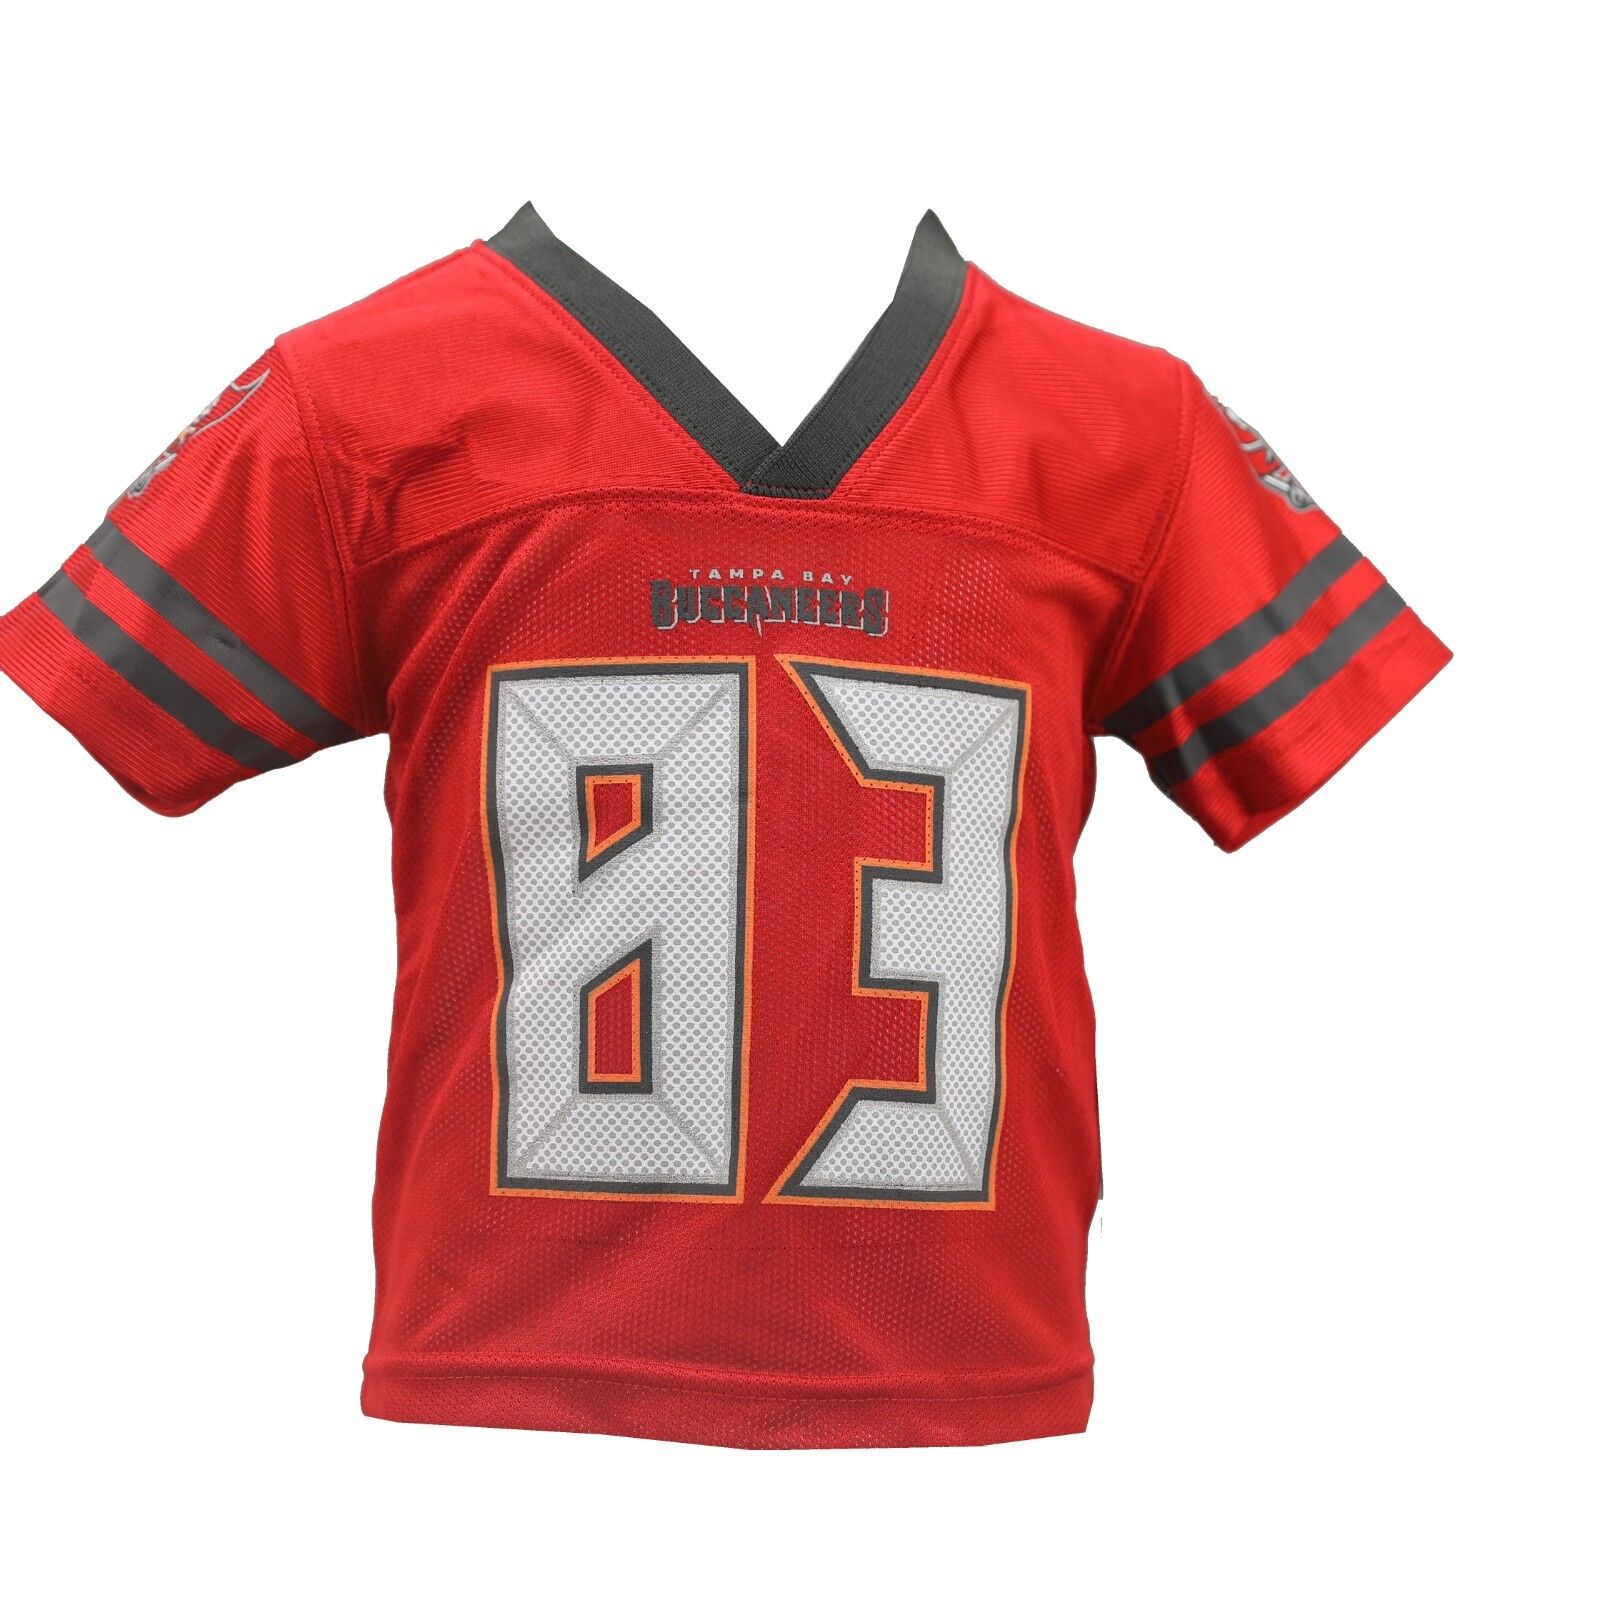 info for 47da4 be8db Details about Tampa Bay Buccaneers NFL Infant & Toddler Size Vincent  Jackson Jersey New Tags